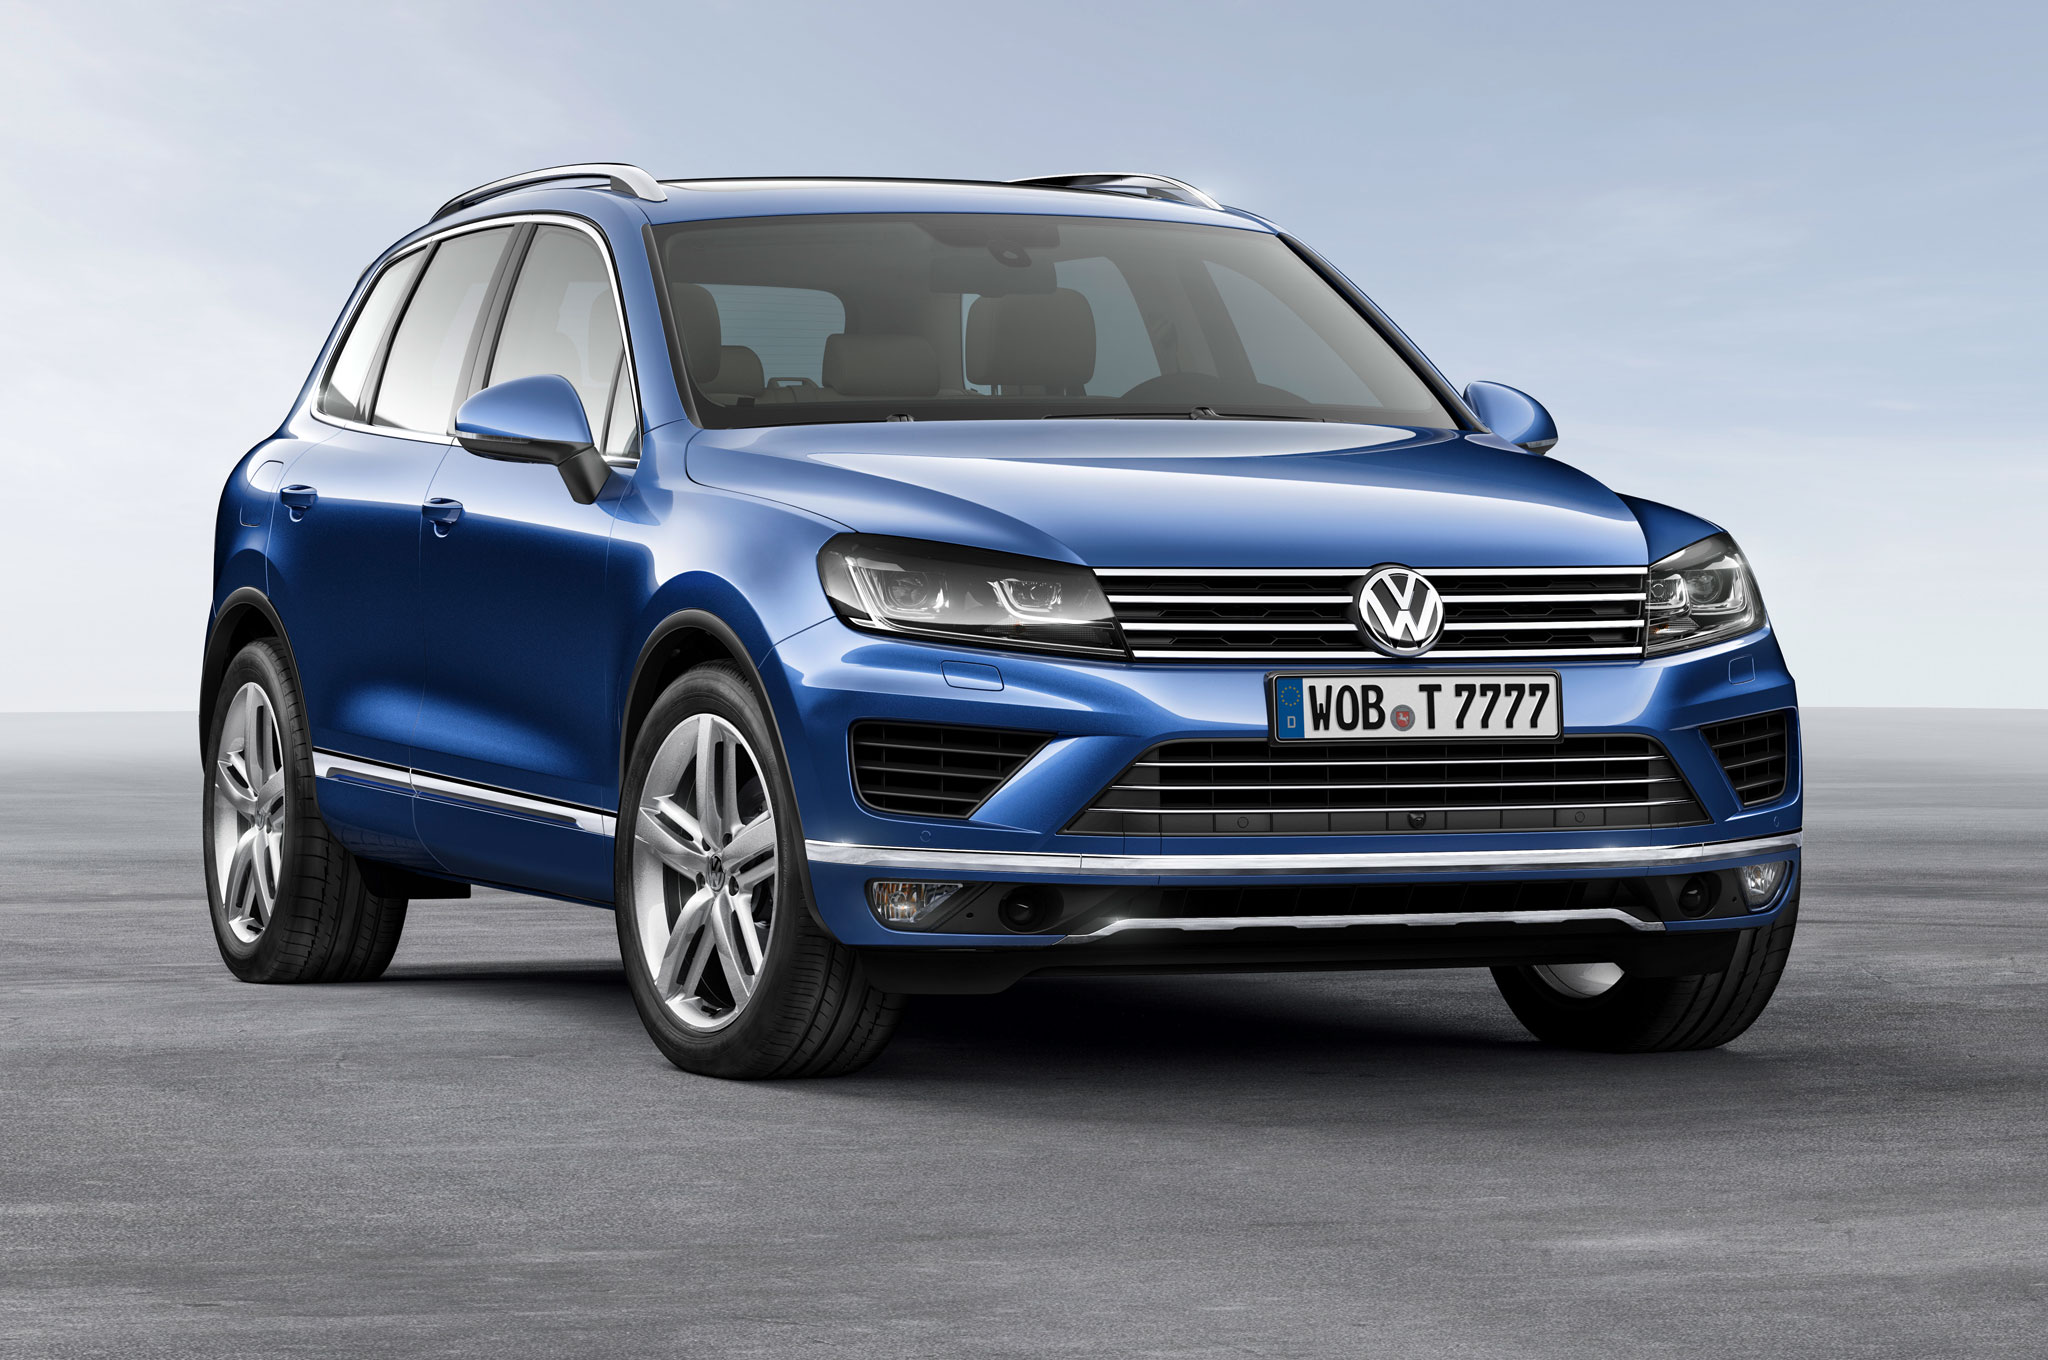 Volkswagen Touareg 2014 Beijing Auto Show Front Side View1